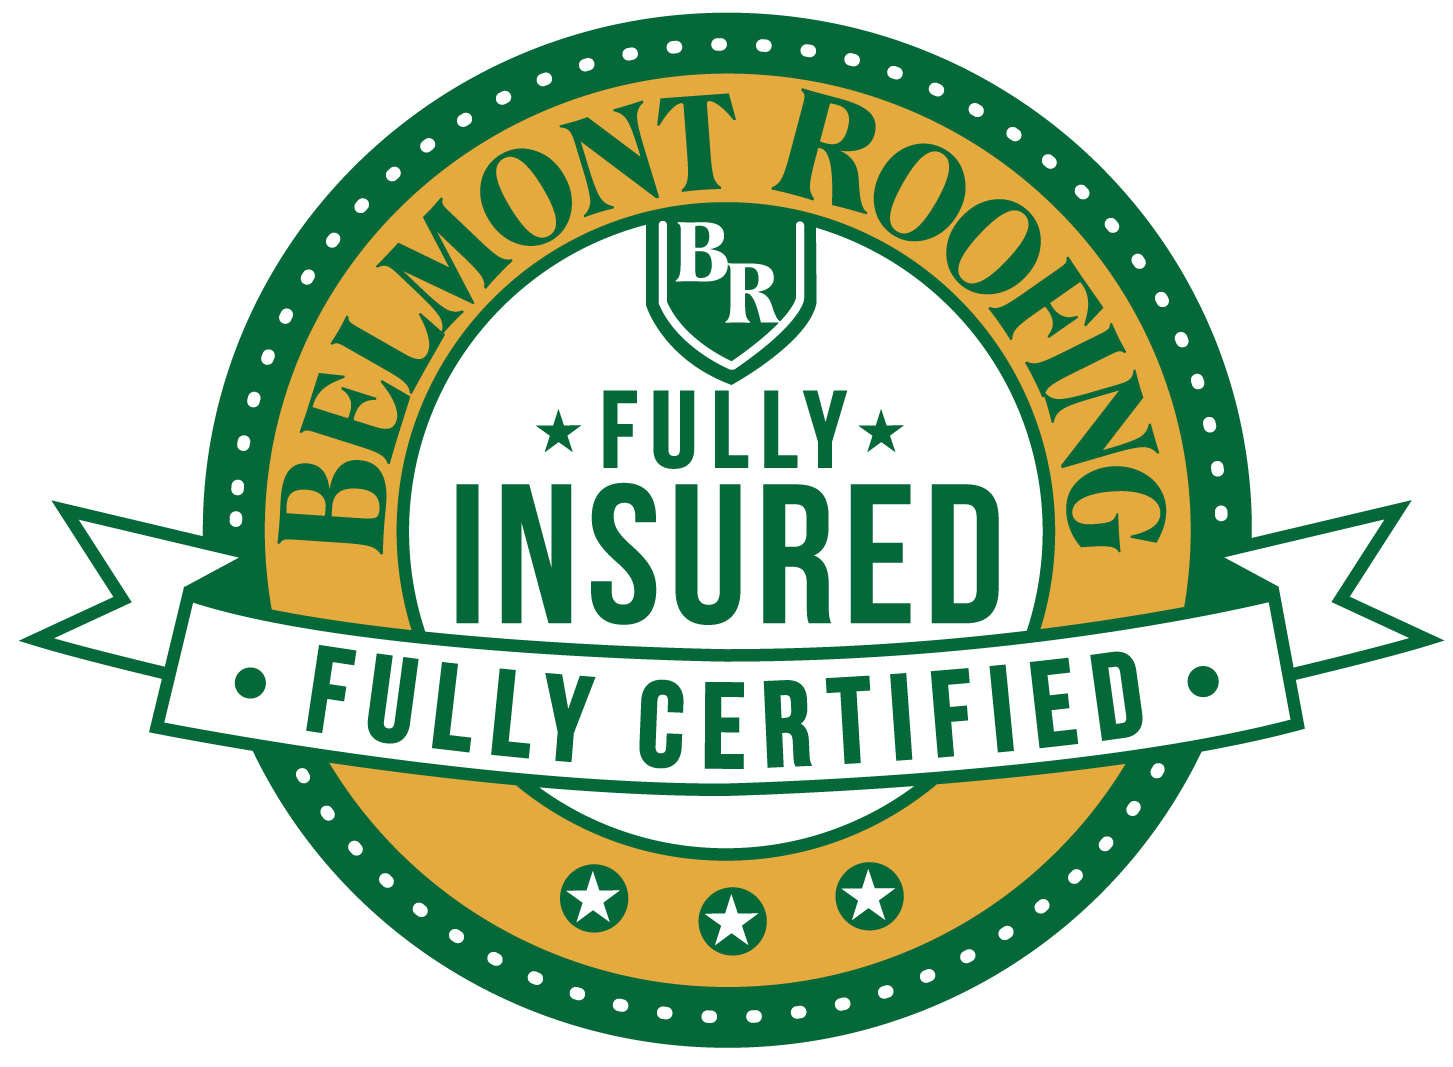 Belmont Roofing Fully Insured and Certified logo